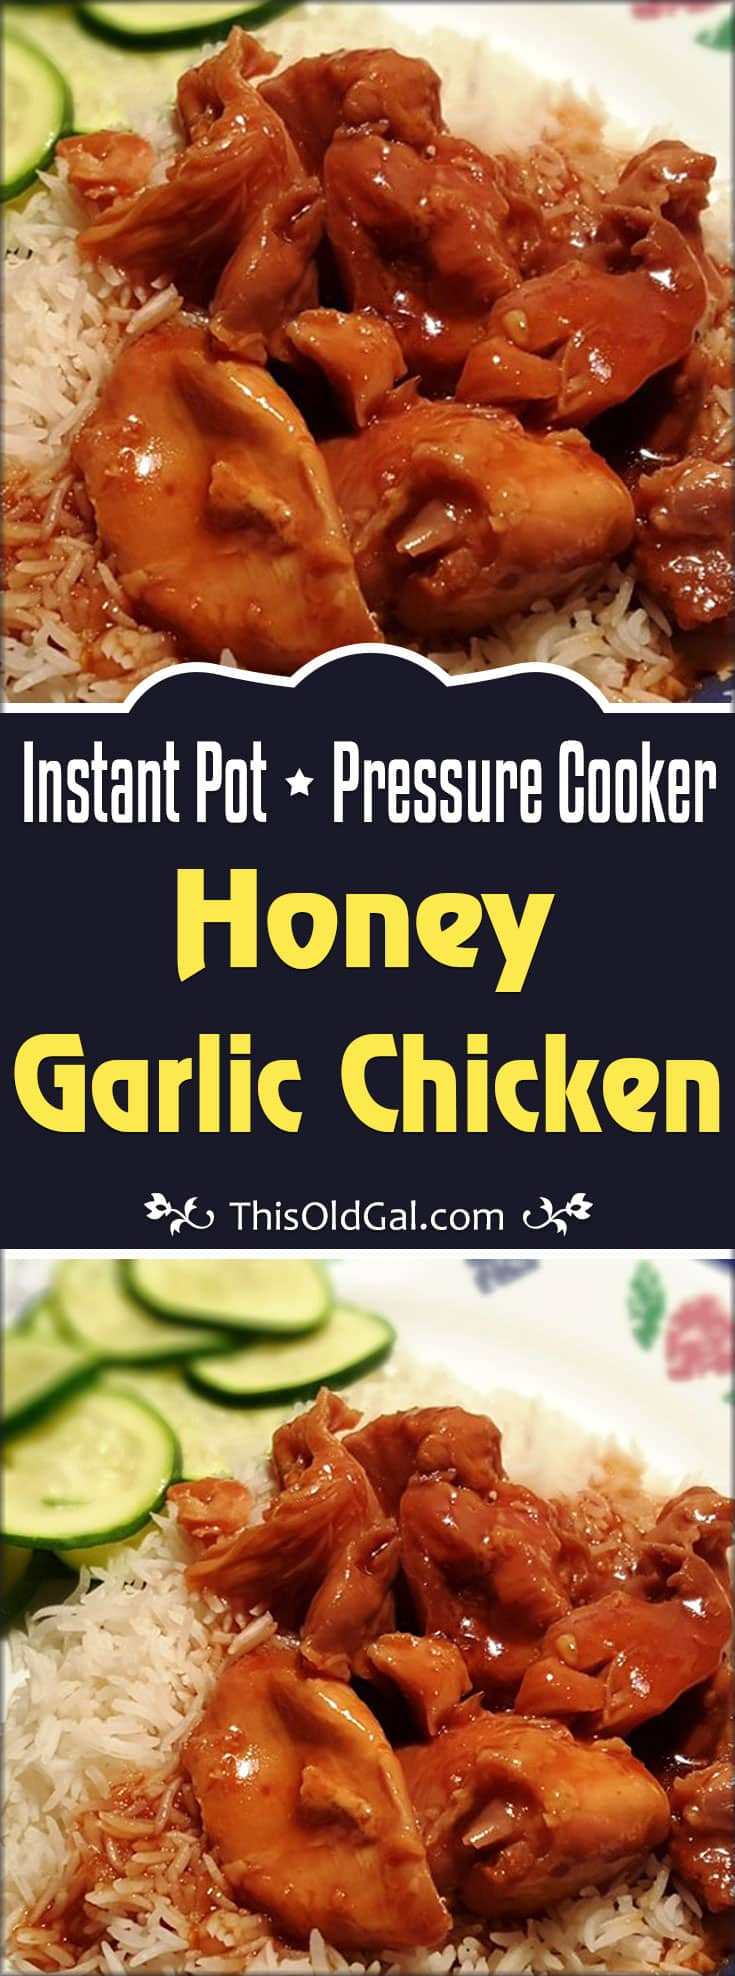 Pressure Cooker Honey Garlic Chicken